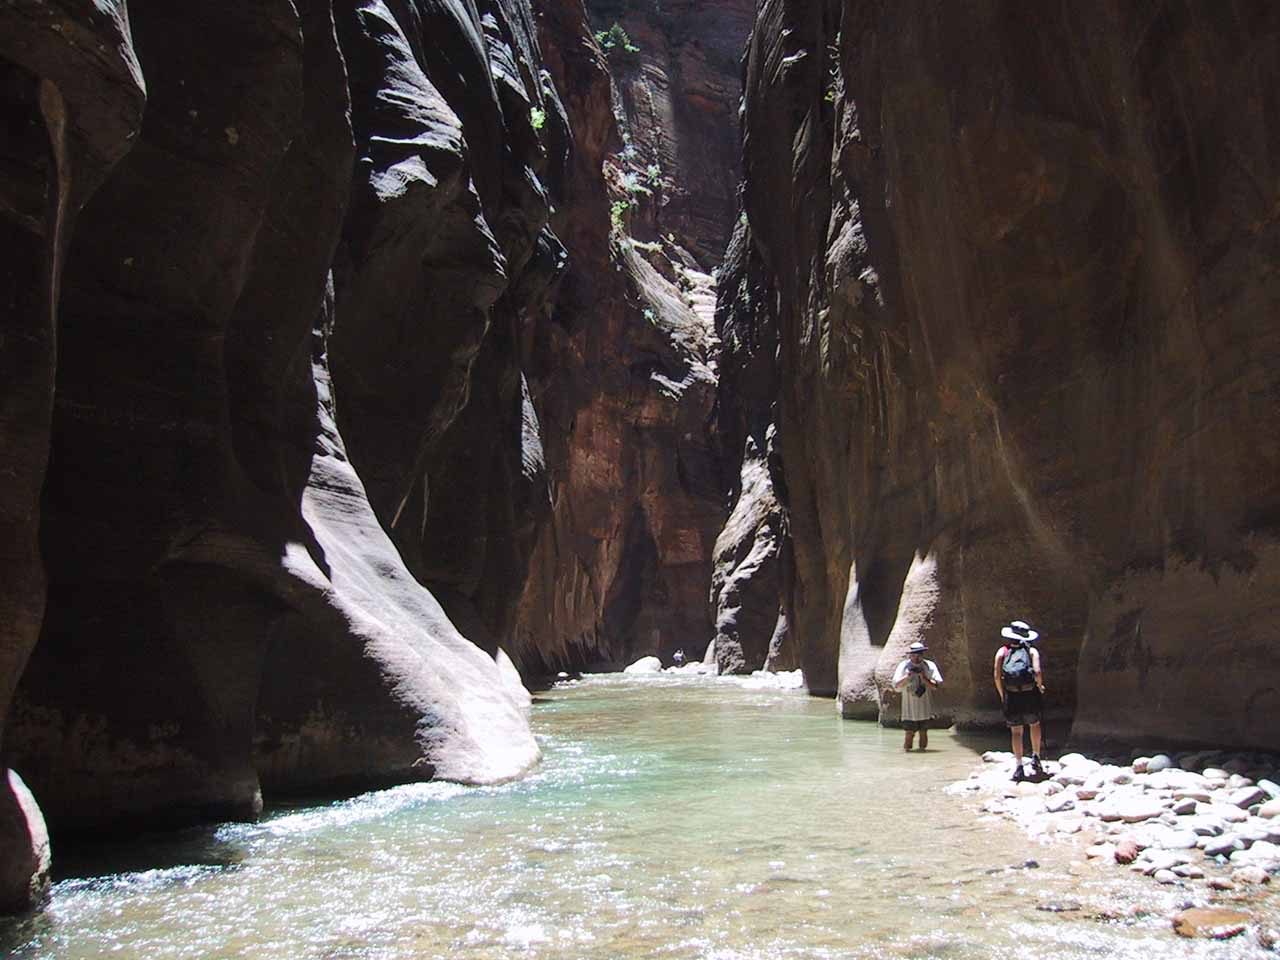 Going back downstream along the Virgin River after leaving Orderville Canyon in 2001